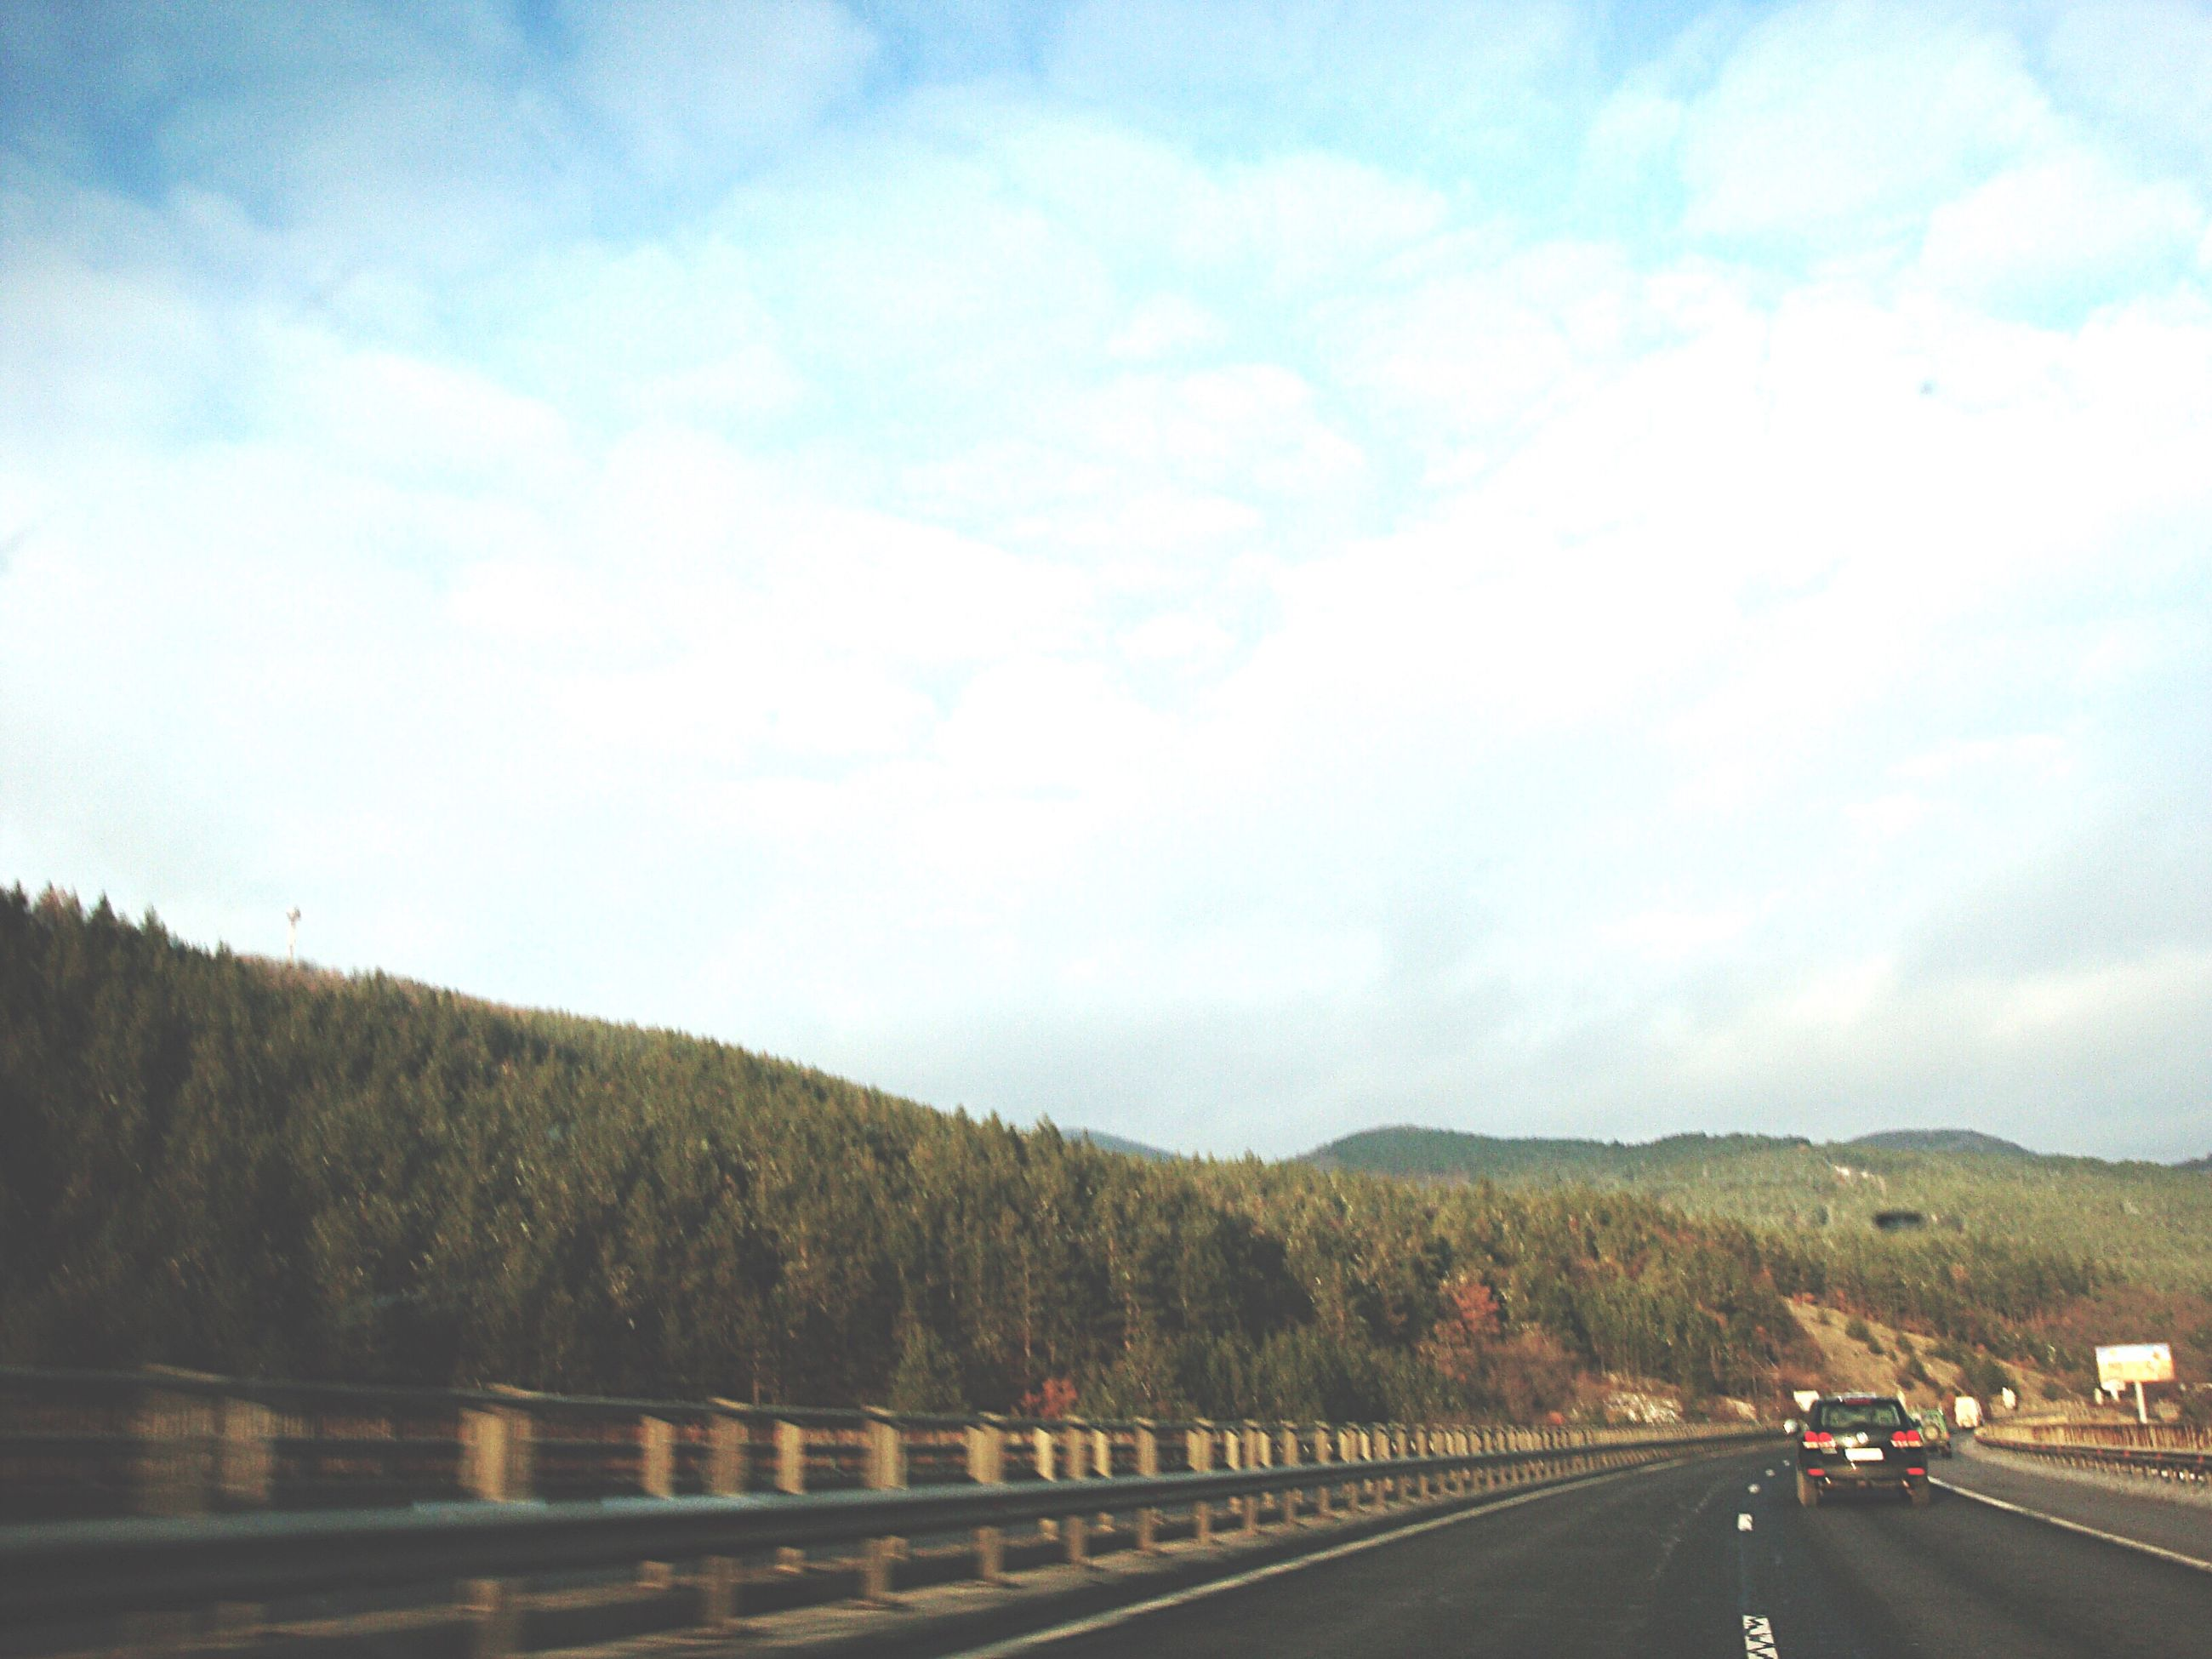 road, mountain, sky, the way forward, cloud - sky, road marking, mountain range, cloud, cloudy, landscape, scenics, country road, nature, tranquility, tranquil scene, diminishing perspective, beauty in nature, outdoors, vanishing point, day, no people, non-urban scene, empty, remote, blue, travel destinations, idyllic